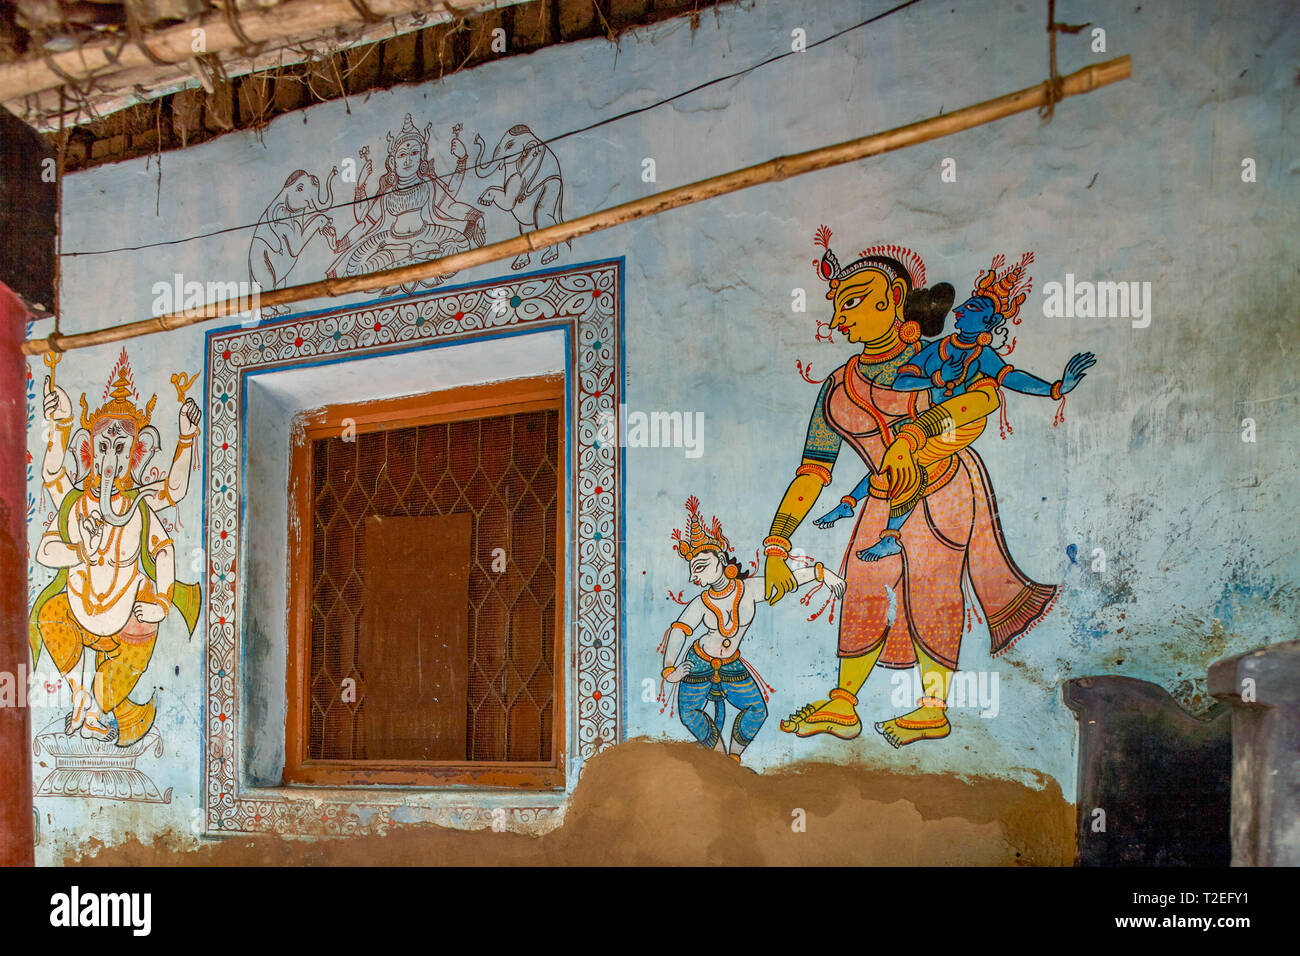 5 Jul 2007 Traditional Wall Painting Outside Ruler House Raghurajpur